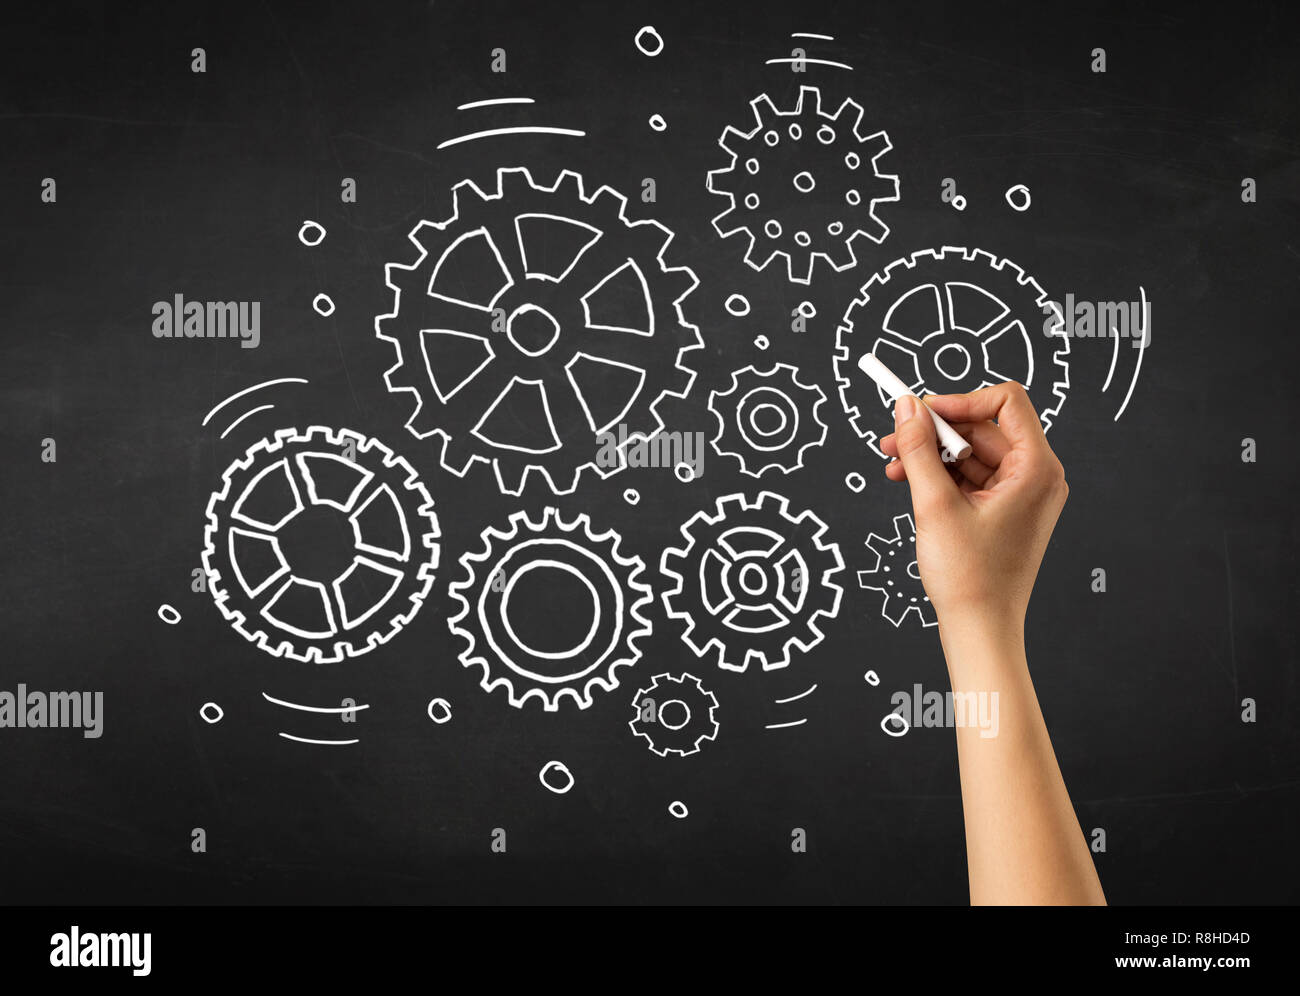 Female hand holding white chalk in front of a blackboard with gears drawn on it - Stock Image